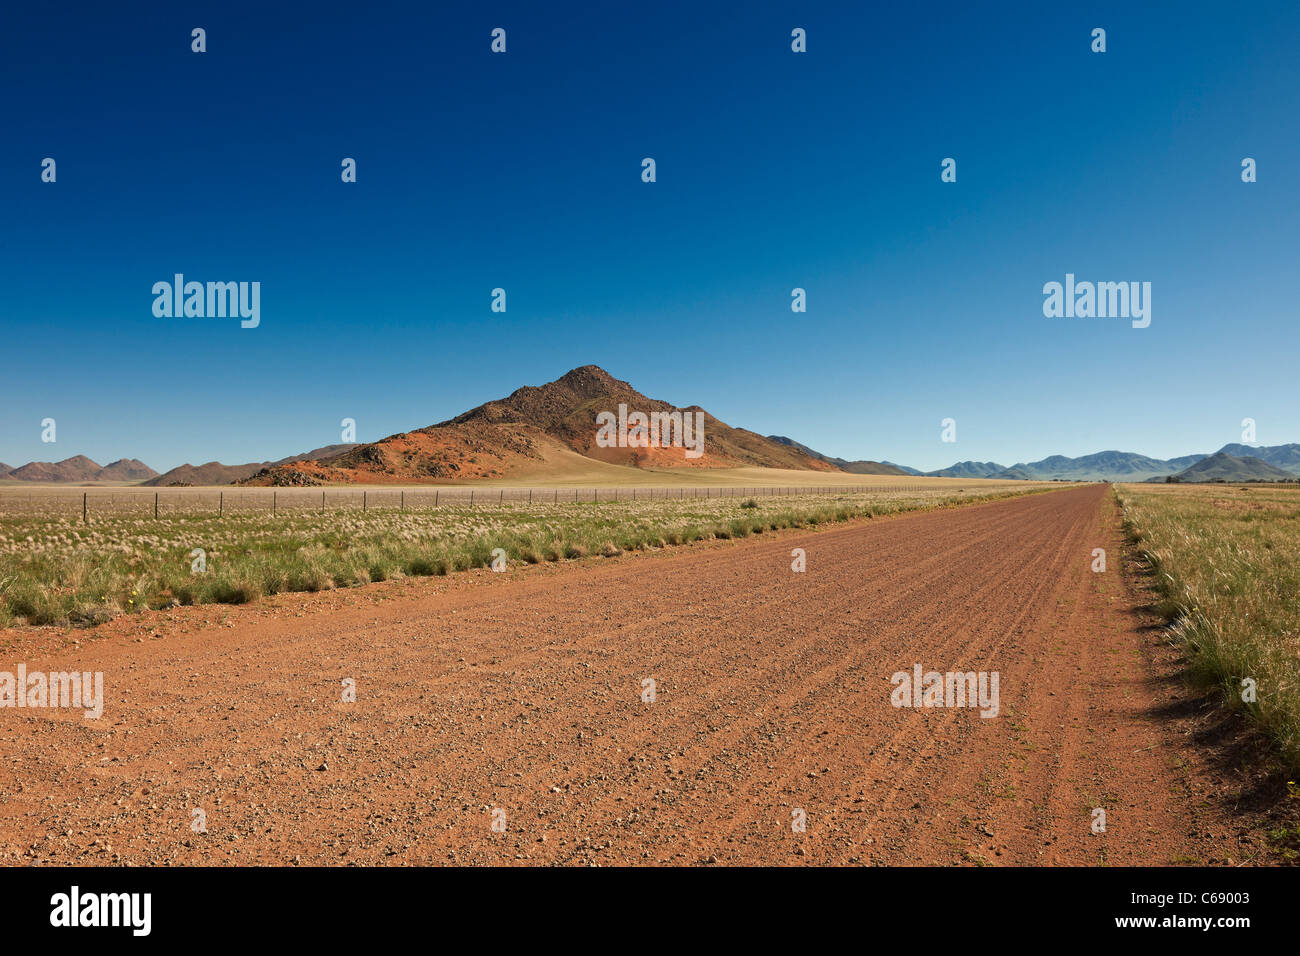 straight deserted gravel road in desert landscape, most beautiful secondary road of the world D707, Namibia, Africa - Stock Image